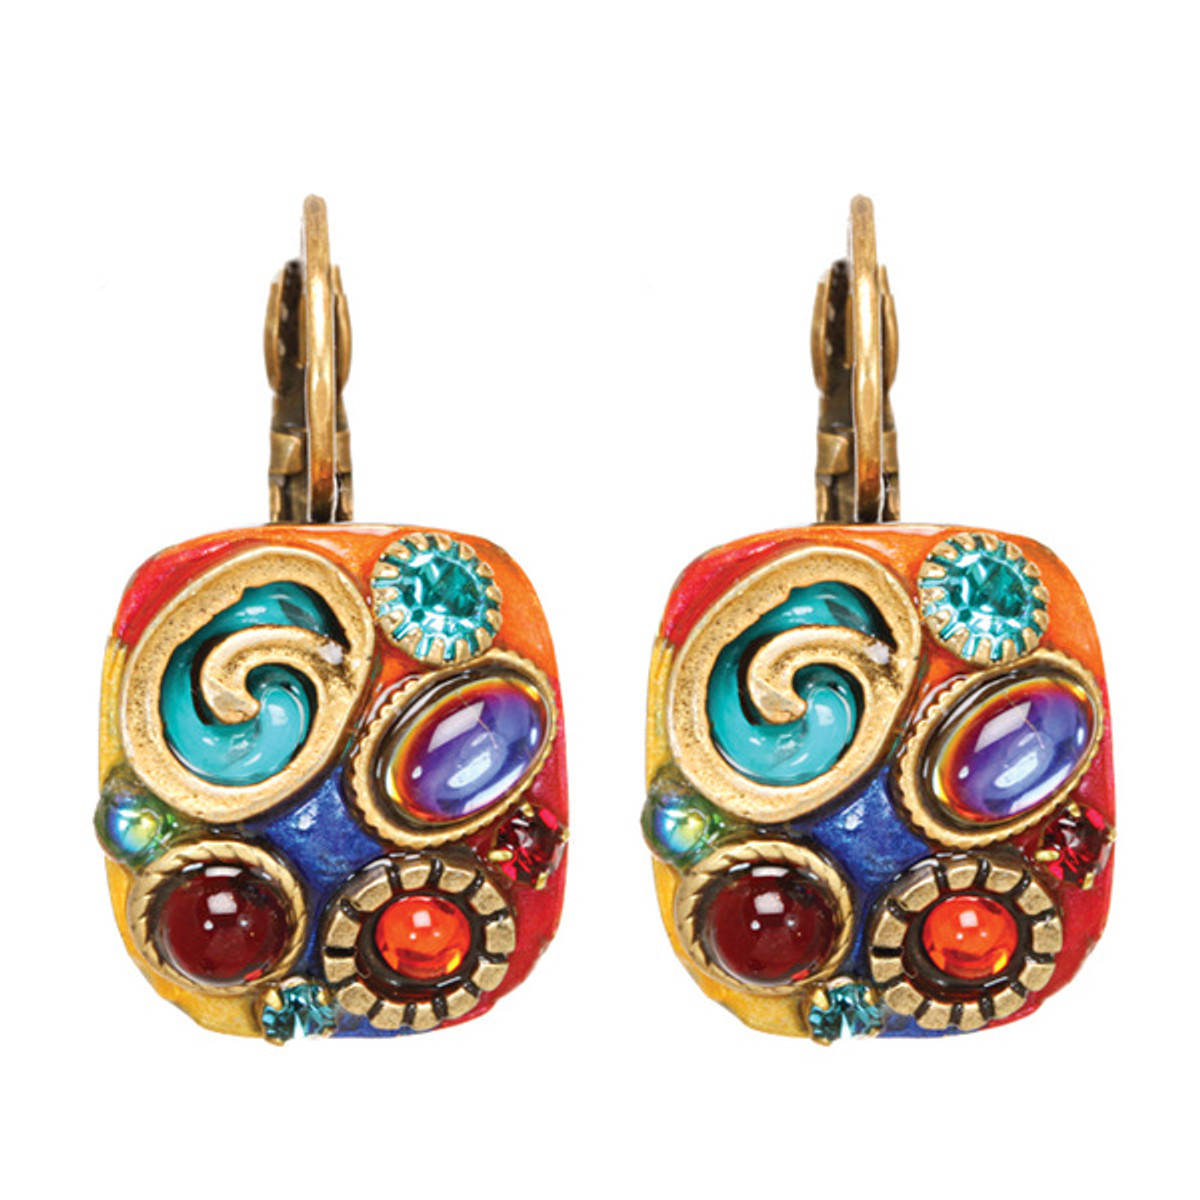 Special Confetti Earrings From Michal Golan Jewelry